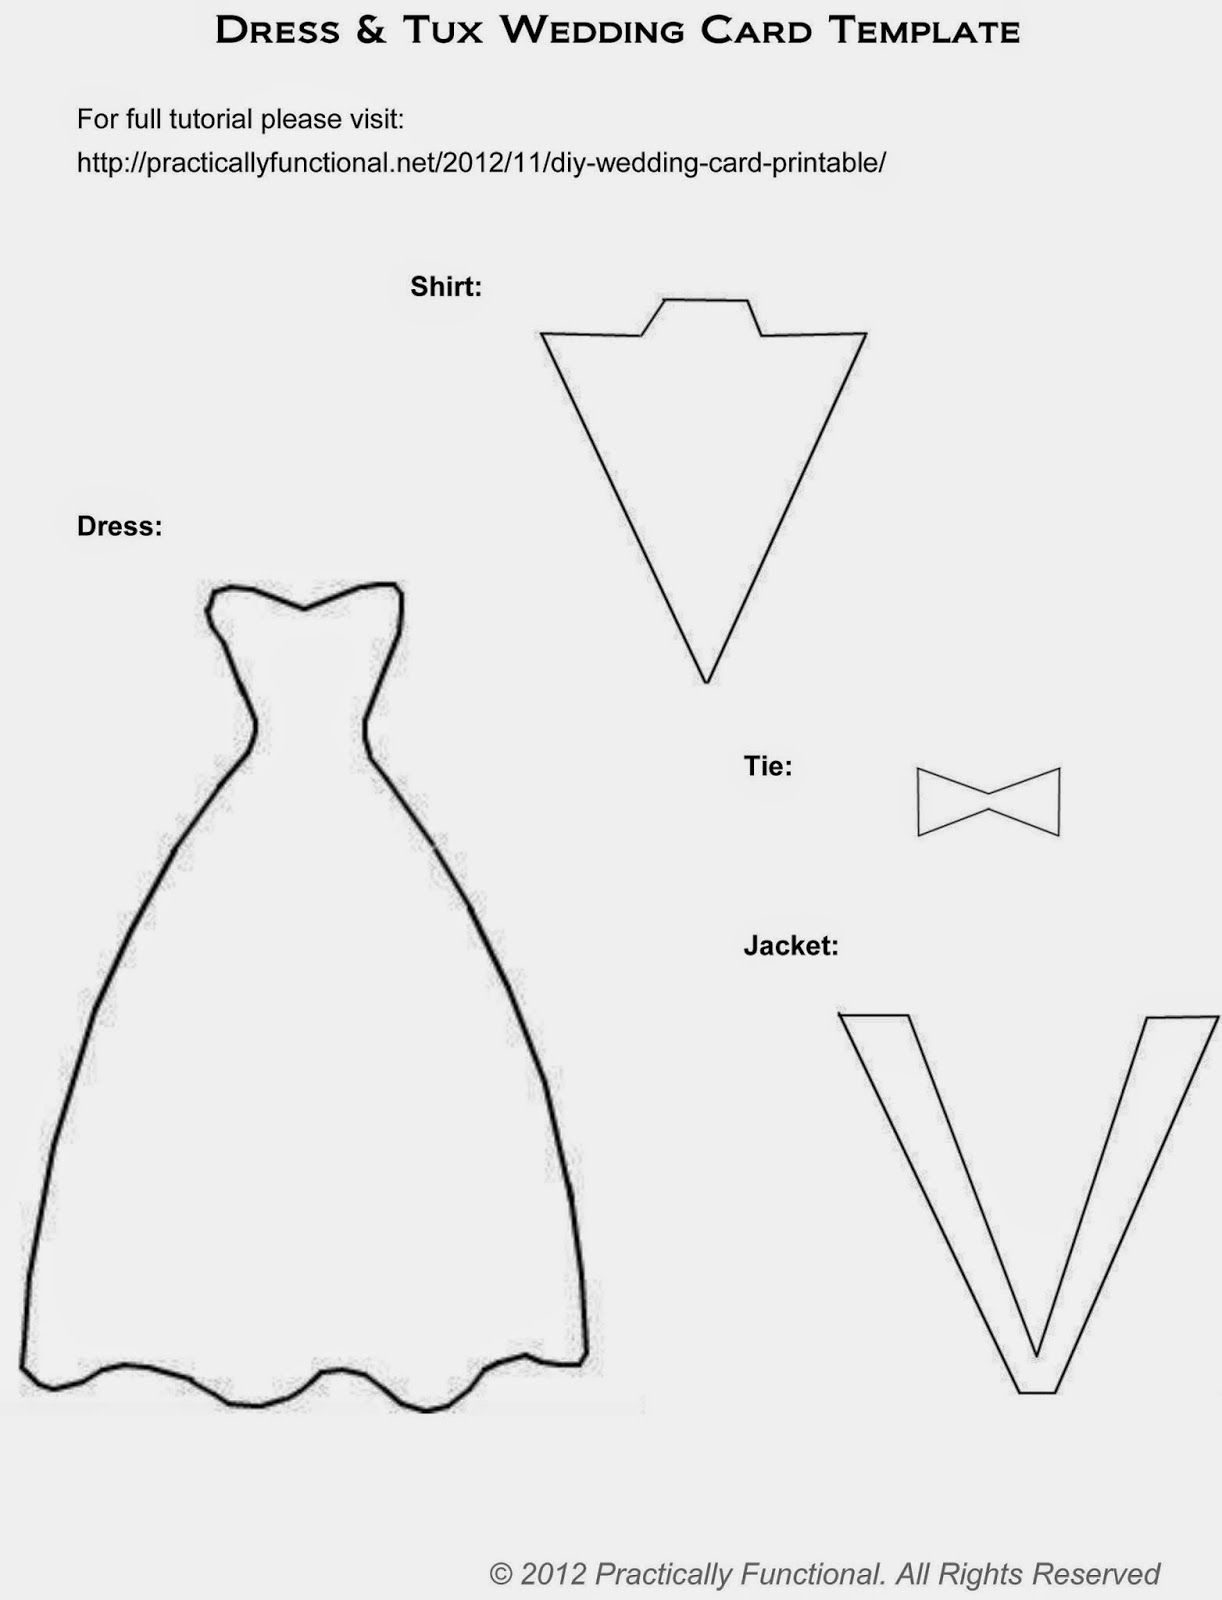 wedding dress and tuxedo svg - Google Search | Cricut / Silhouette ...